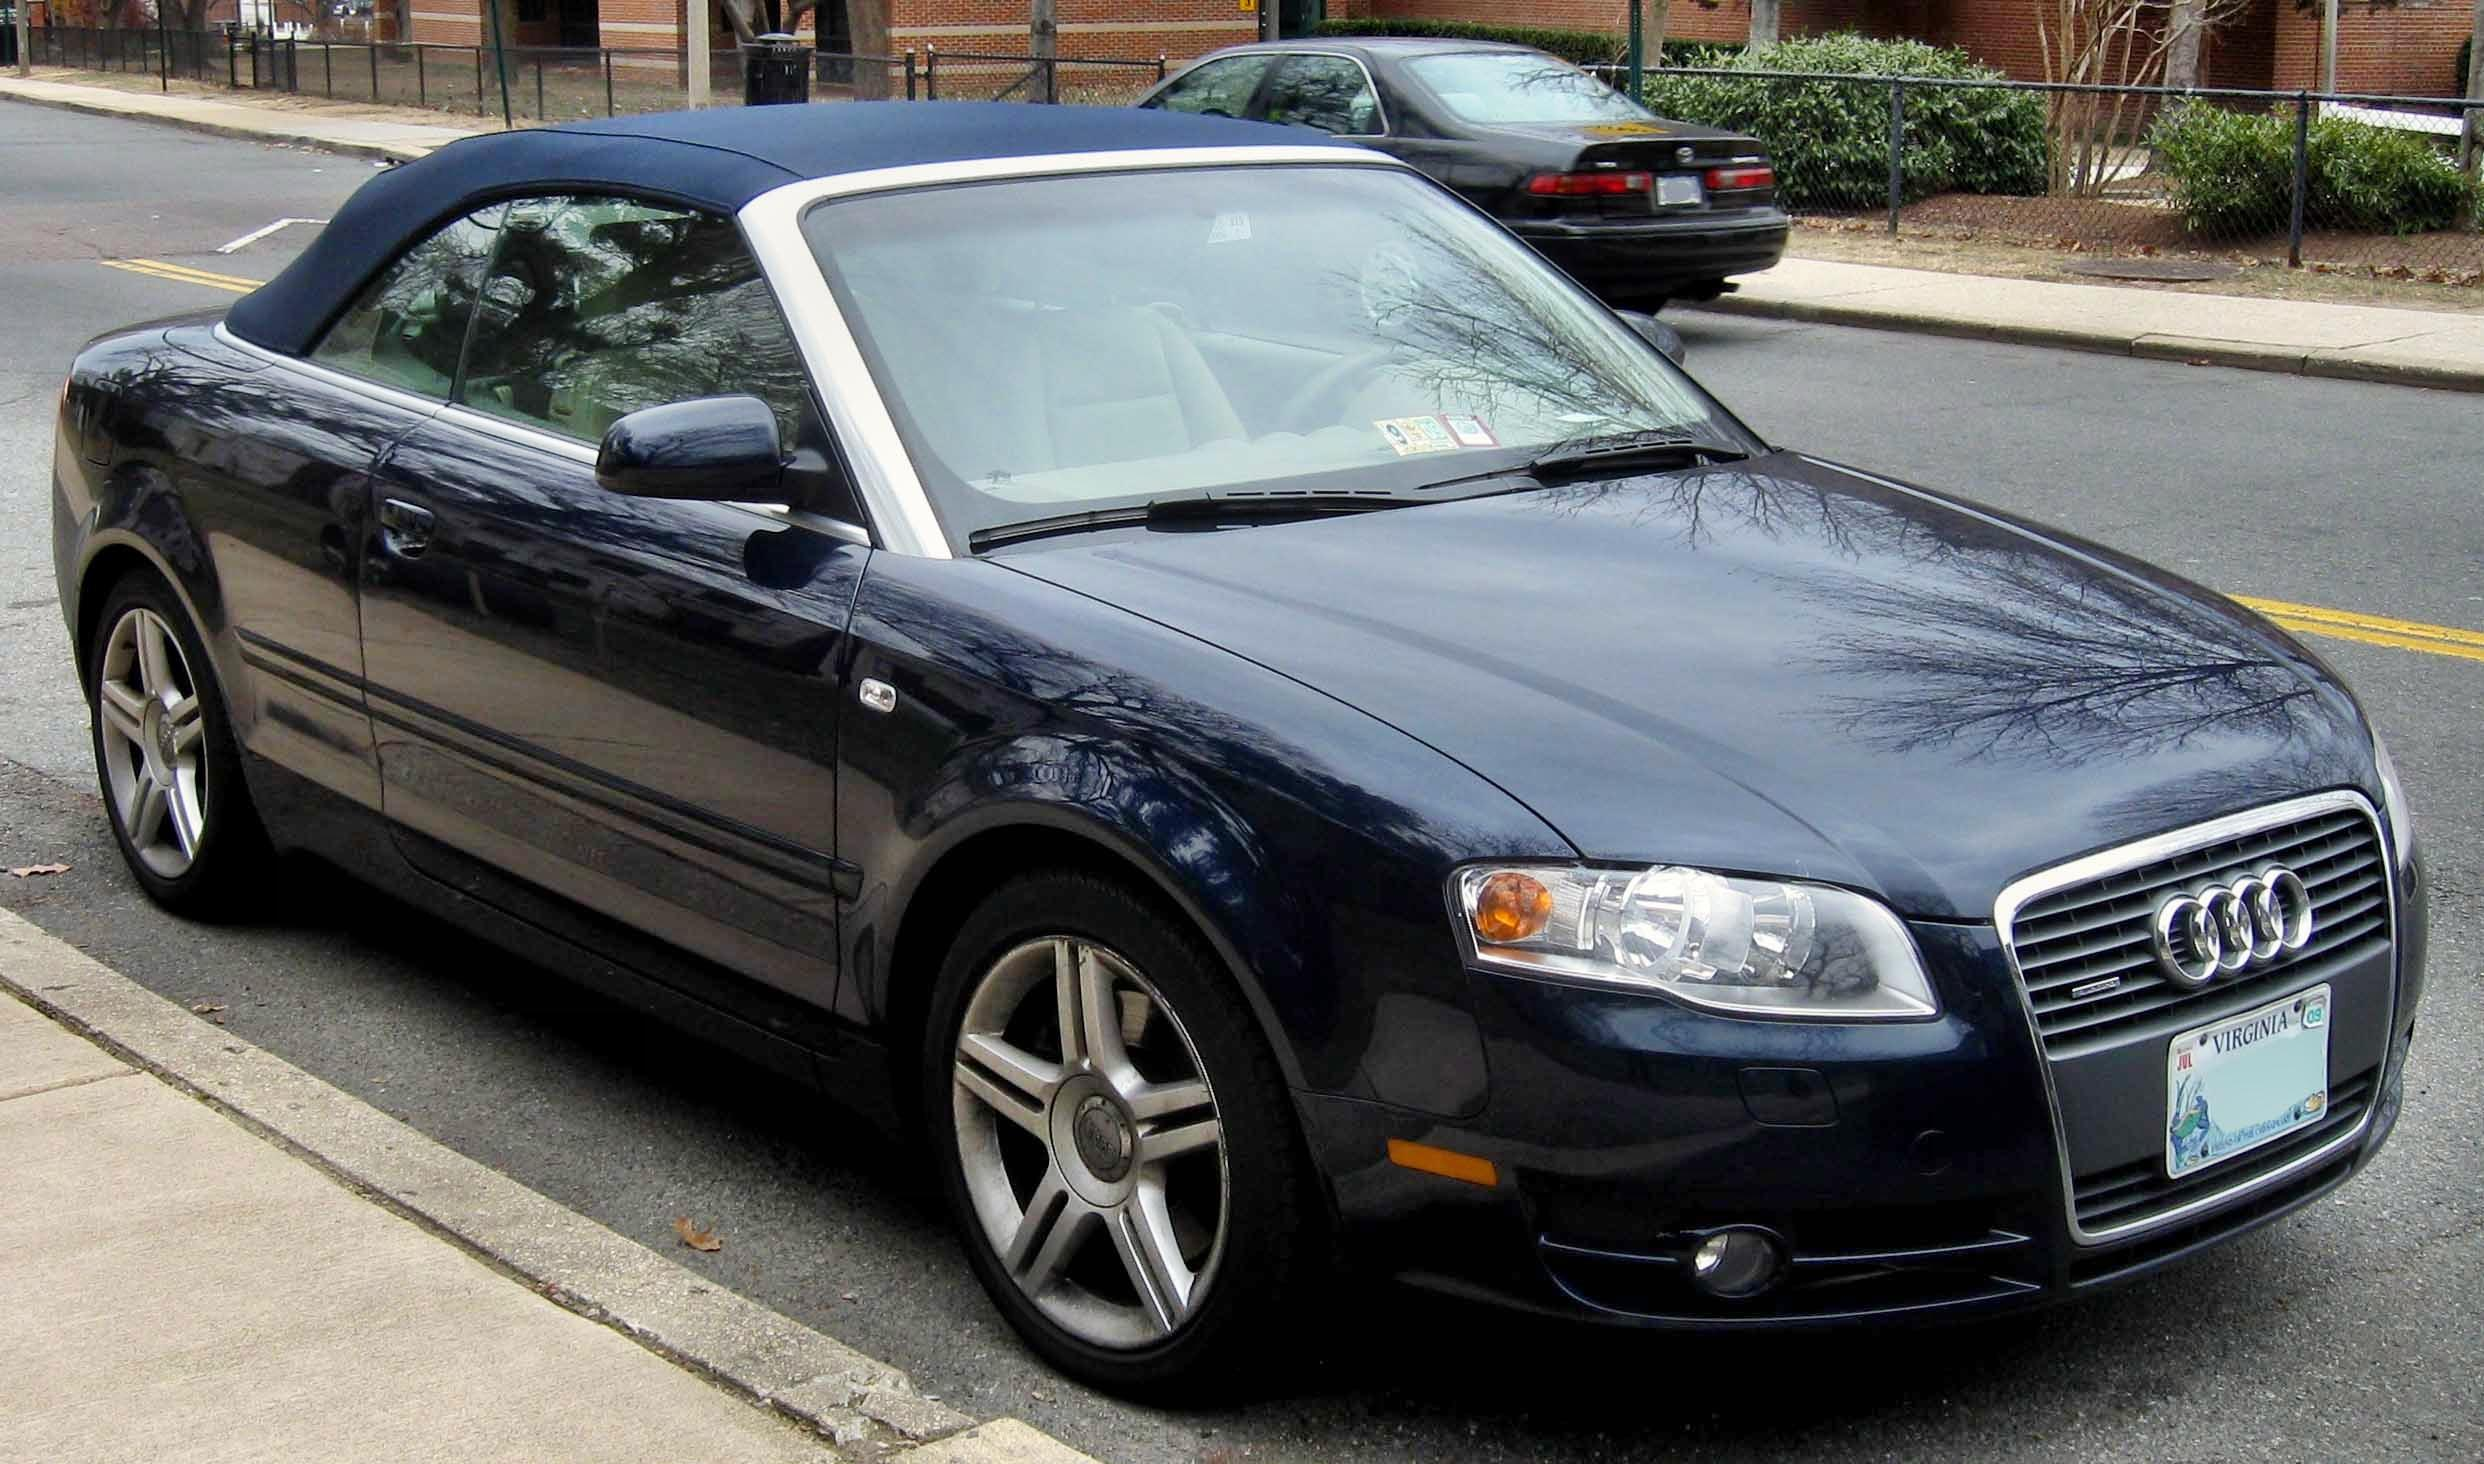 file:audi a4 2.0t convertible - wikimedia commons